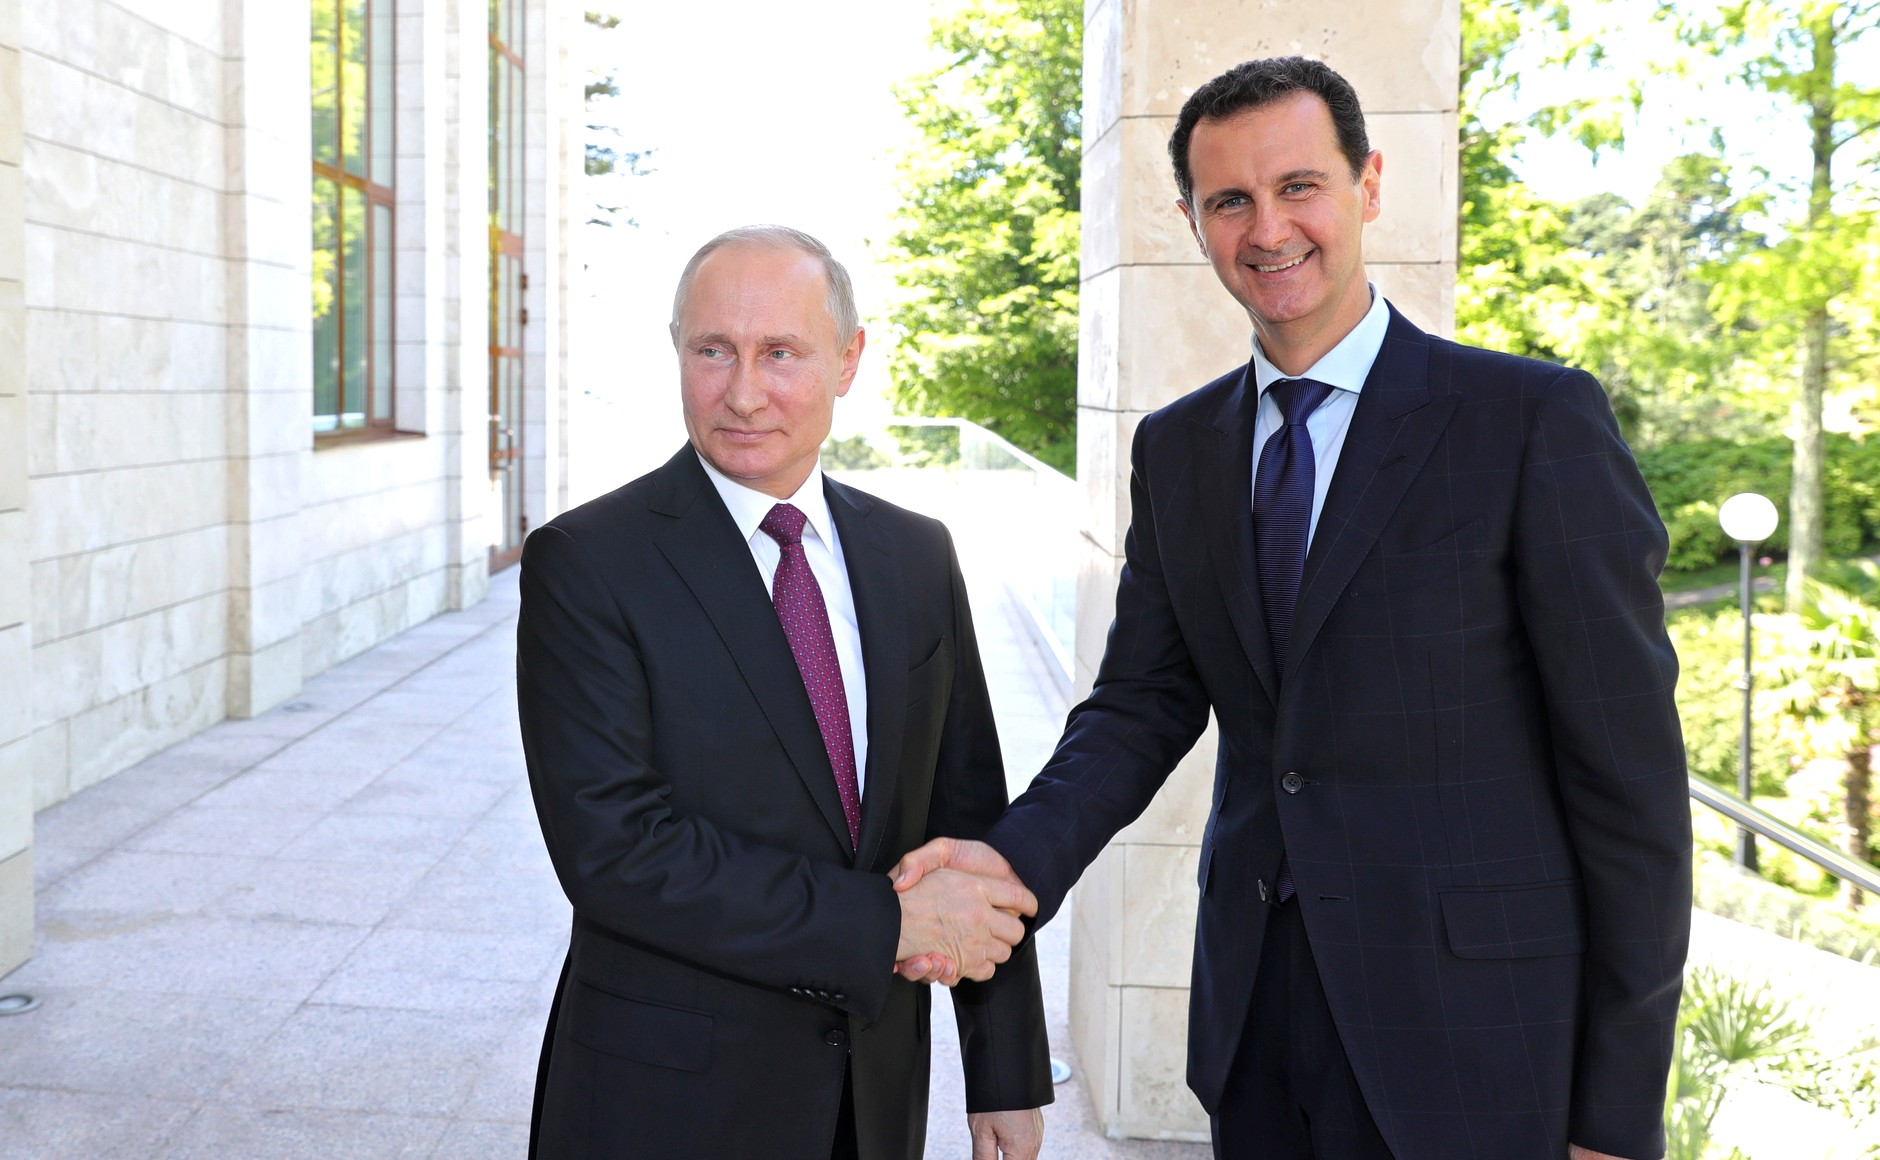 Putin meets with Assad, declares Syria ready for 'political process'